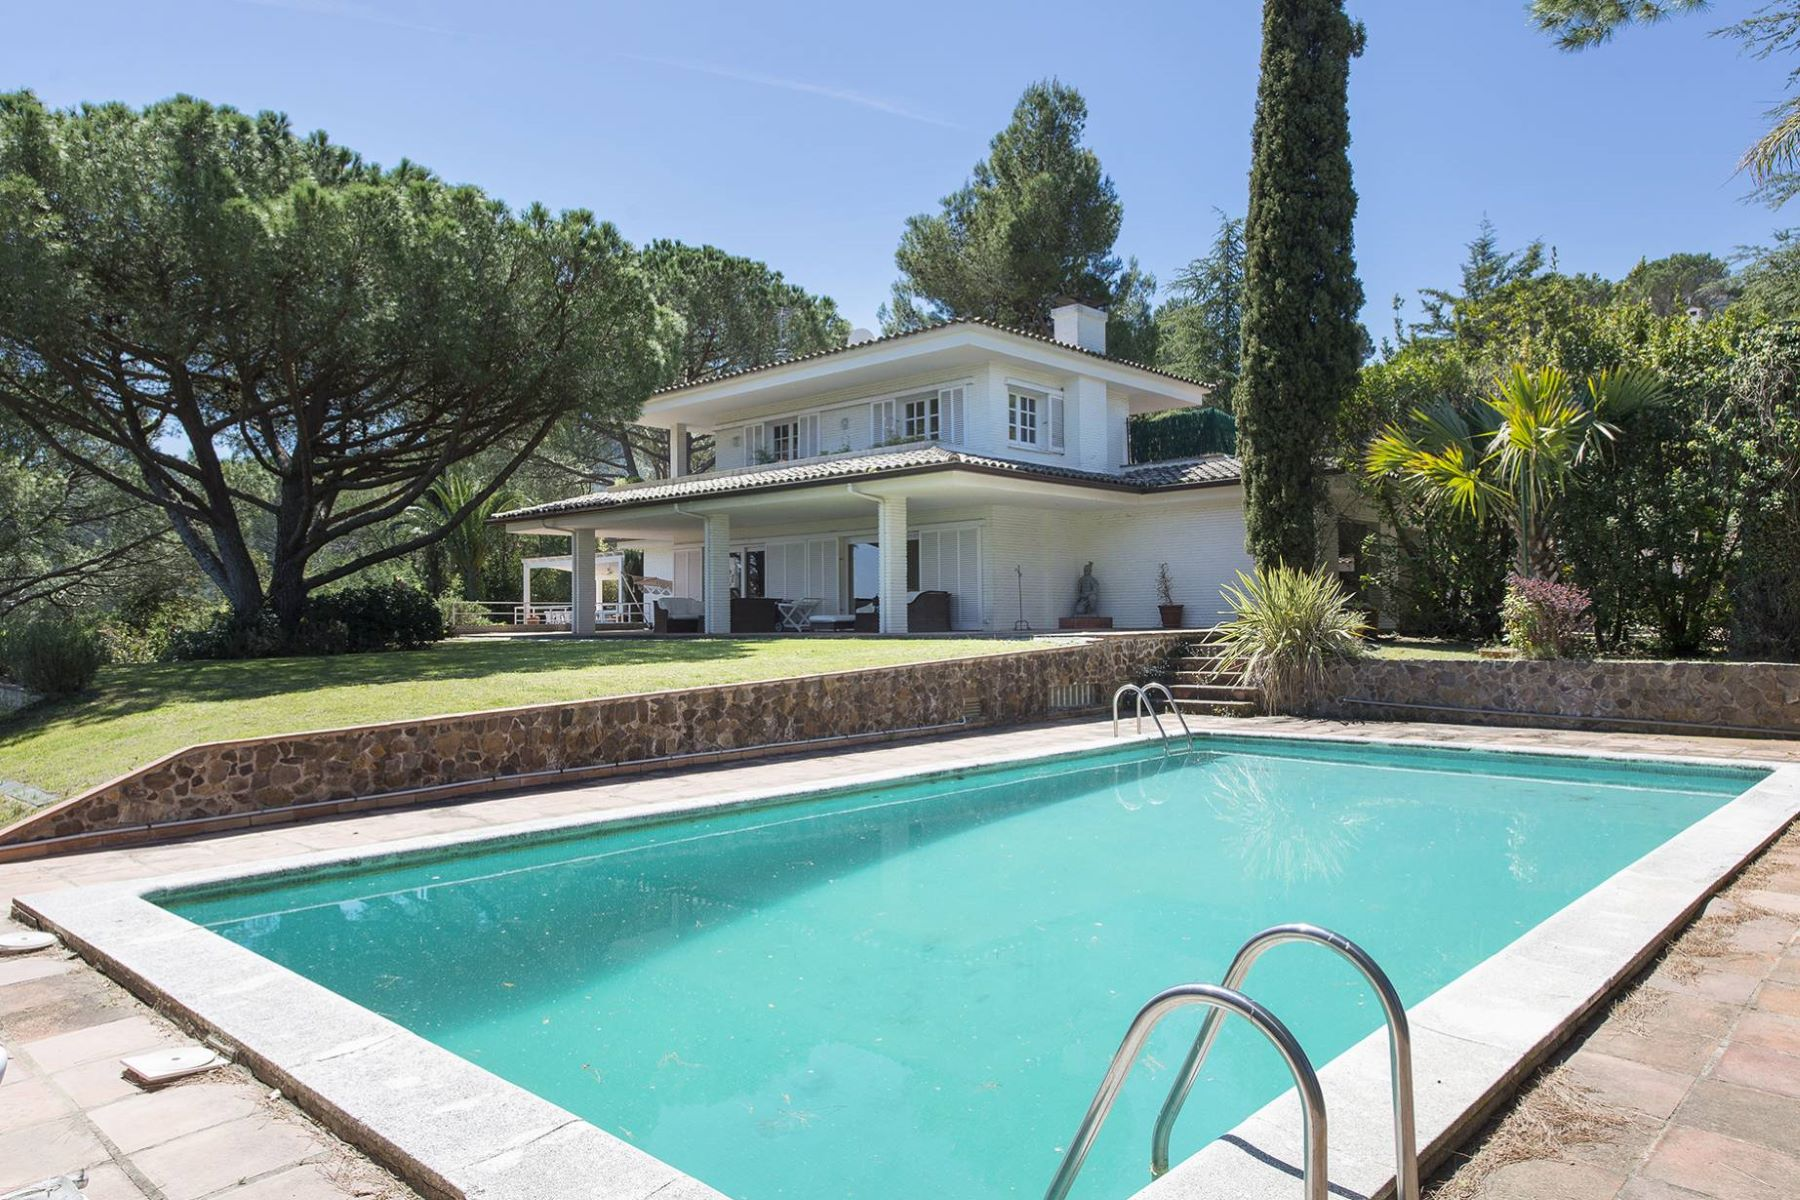 Single Family Home for Sale at Casa con vistas a la montaña y al mar en el Golf de Santa Cristina Santa Cristina D Aro, Costa Brava, 17246 Spain